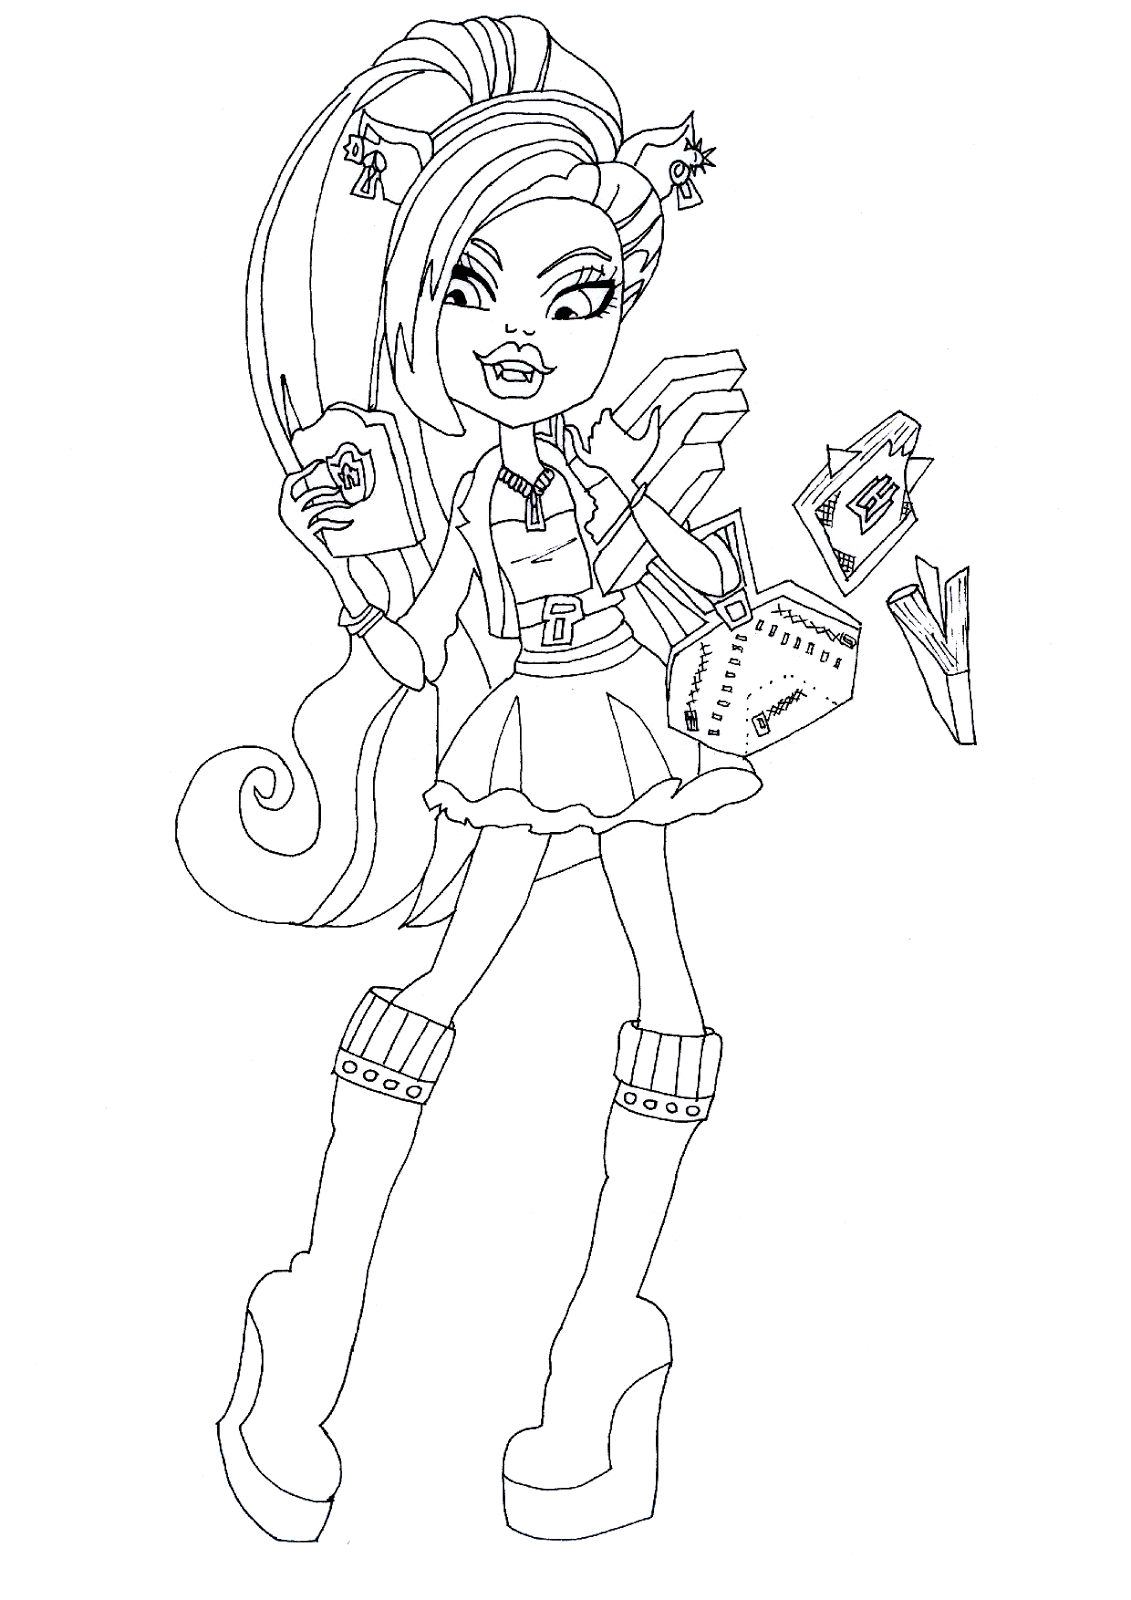 Free printable monster high coloring pages october 2013 for Print monster high coloring pages